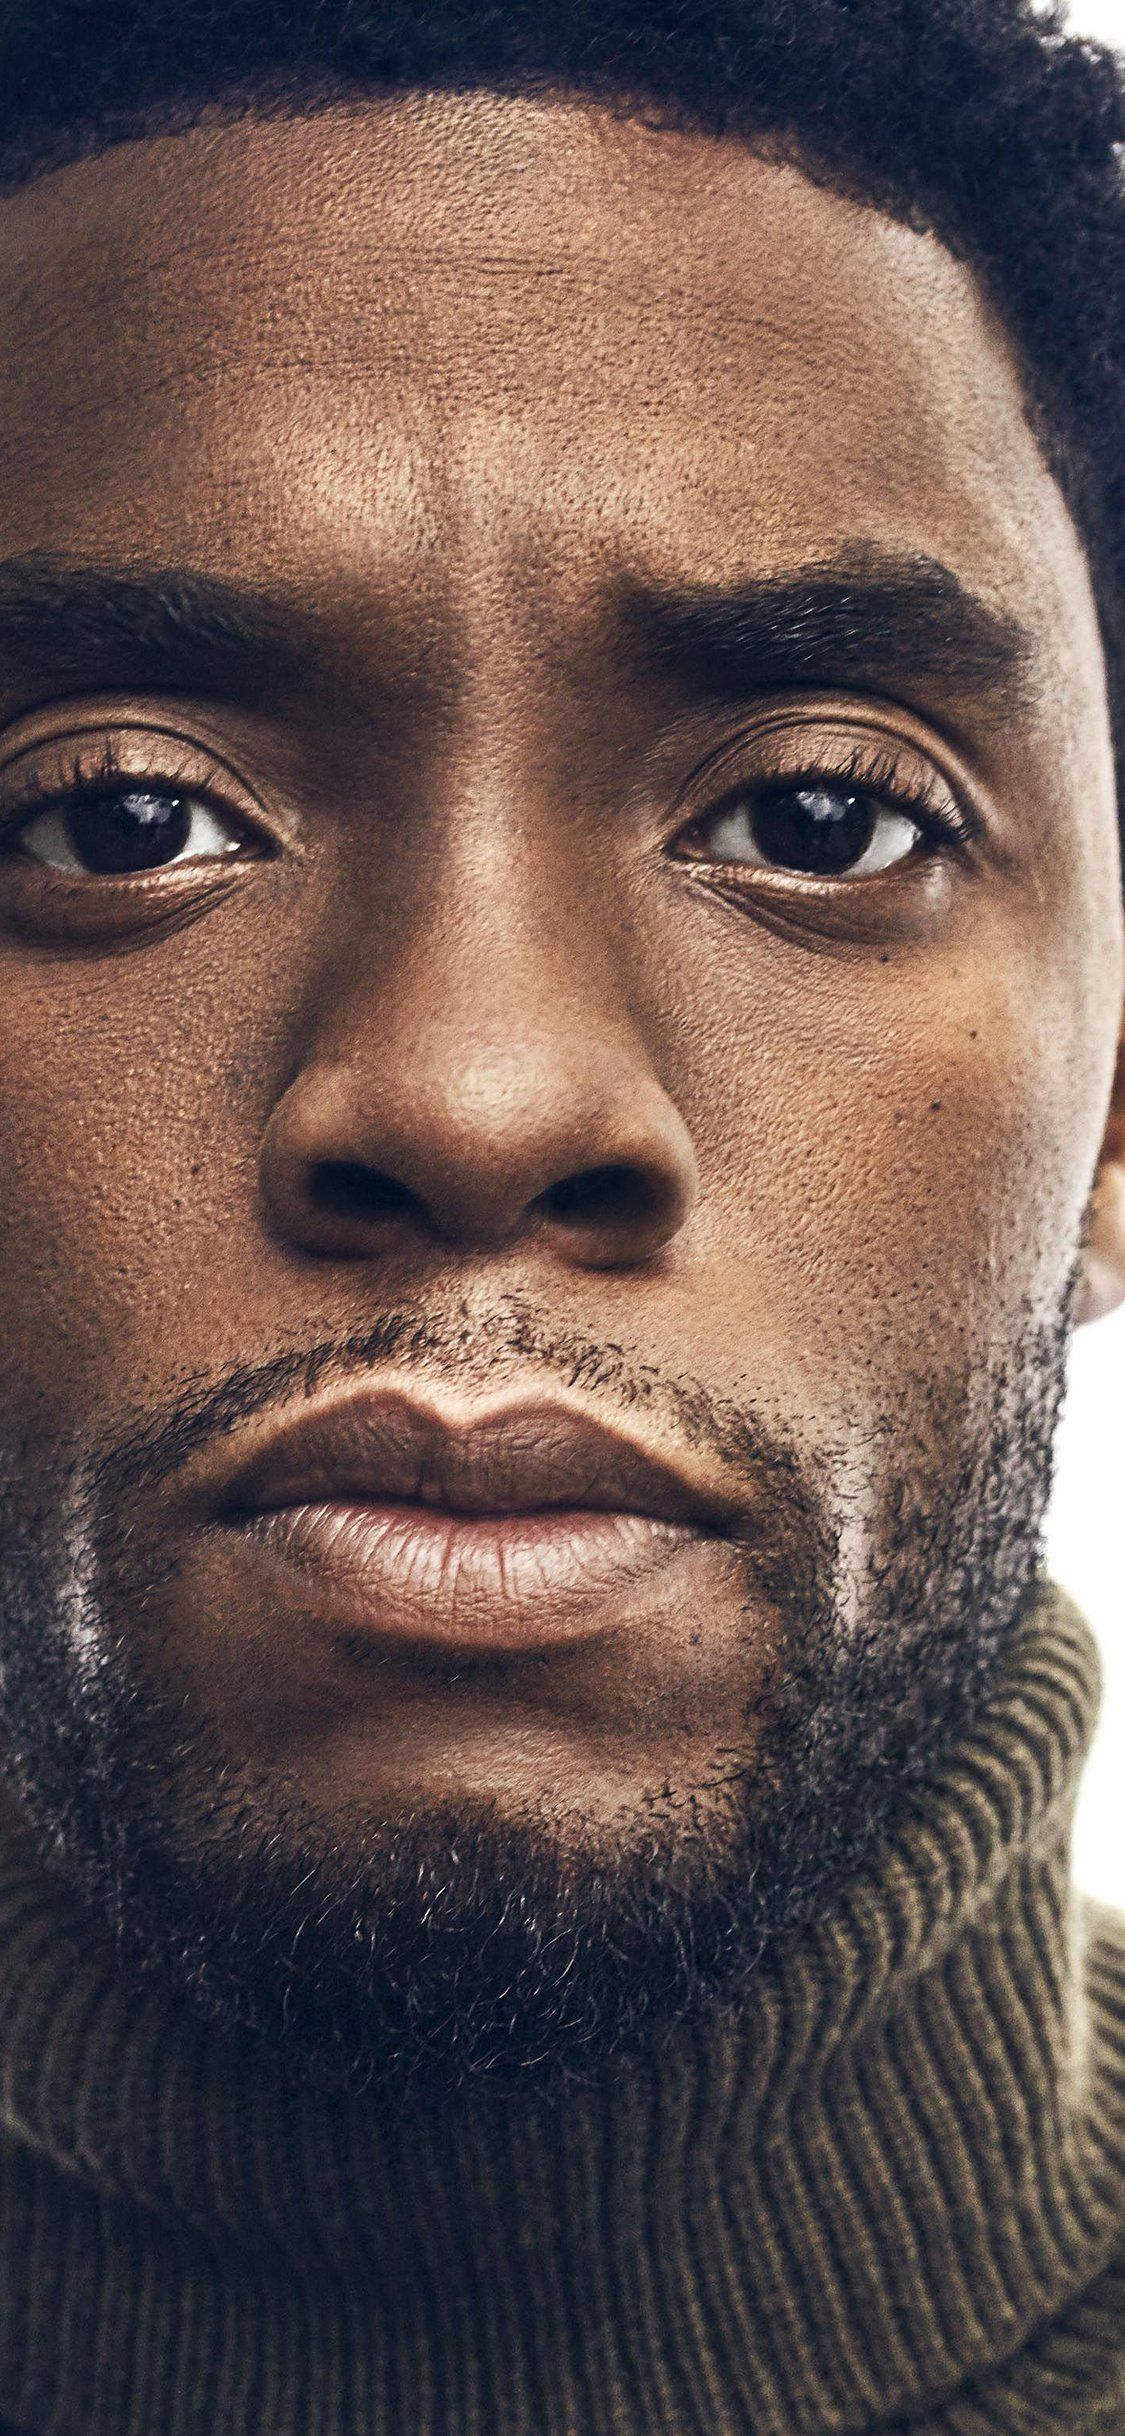 Download Iphone X Chadwick Boseman Close Up Black Panther Hd Wallpaper Movies Wallpaper F Black Panther Chadwick Boseman Chadwick Boseman Black Panther